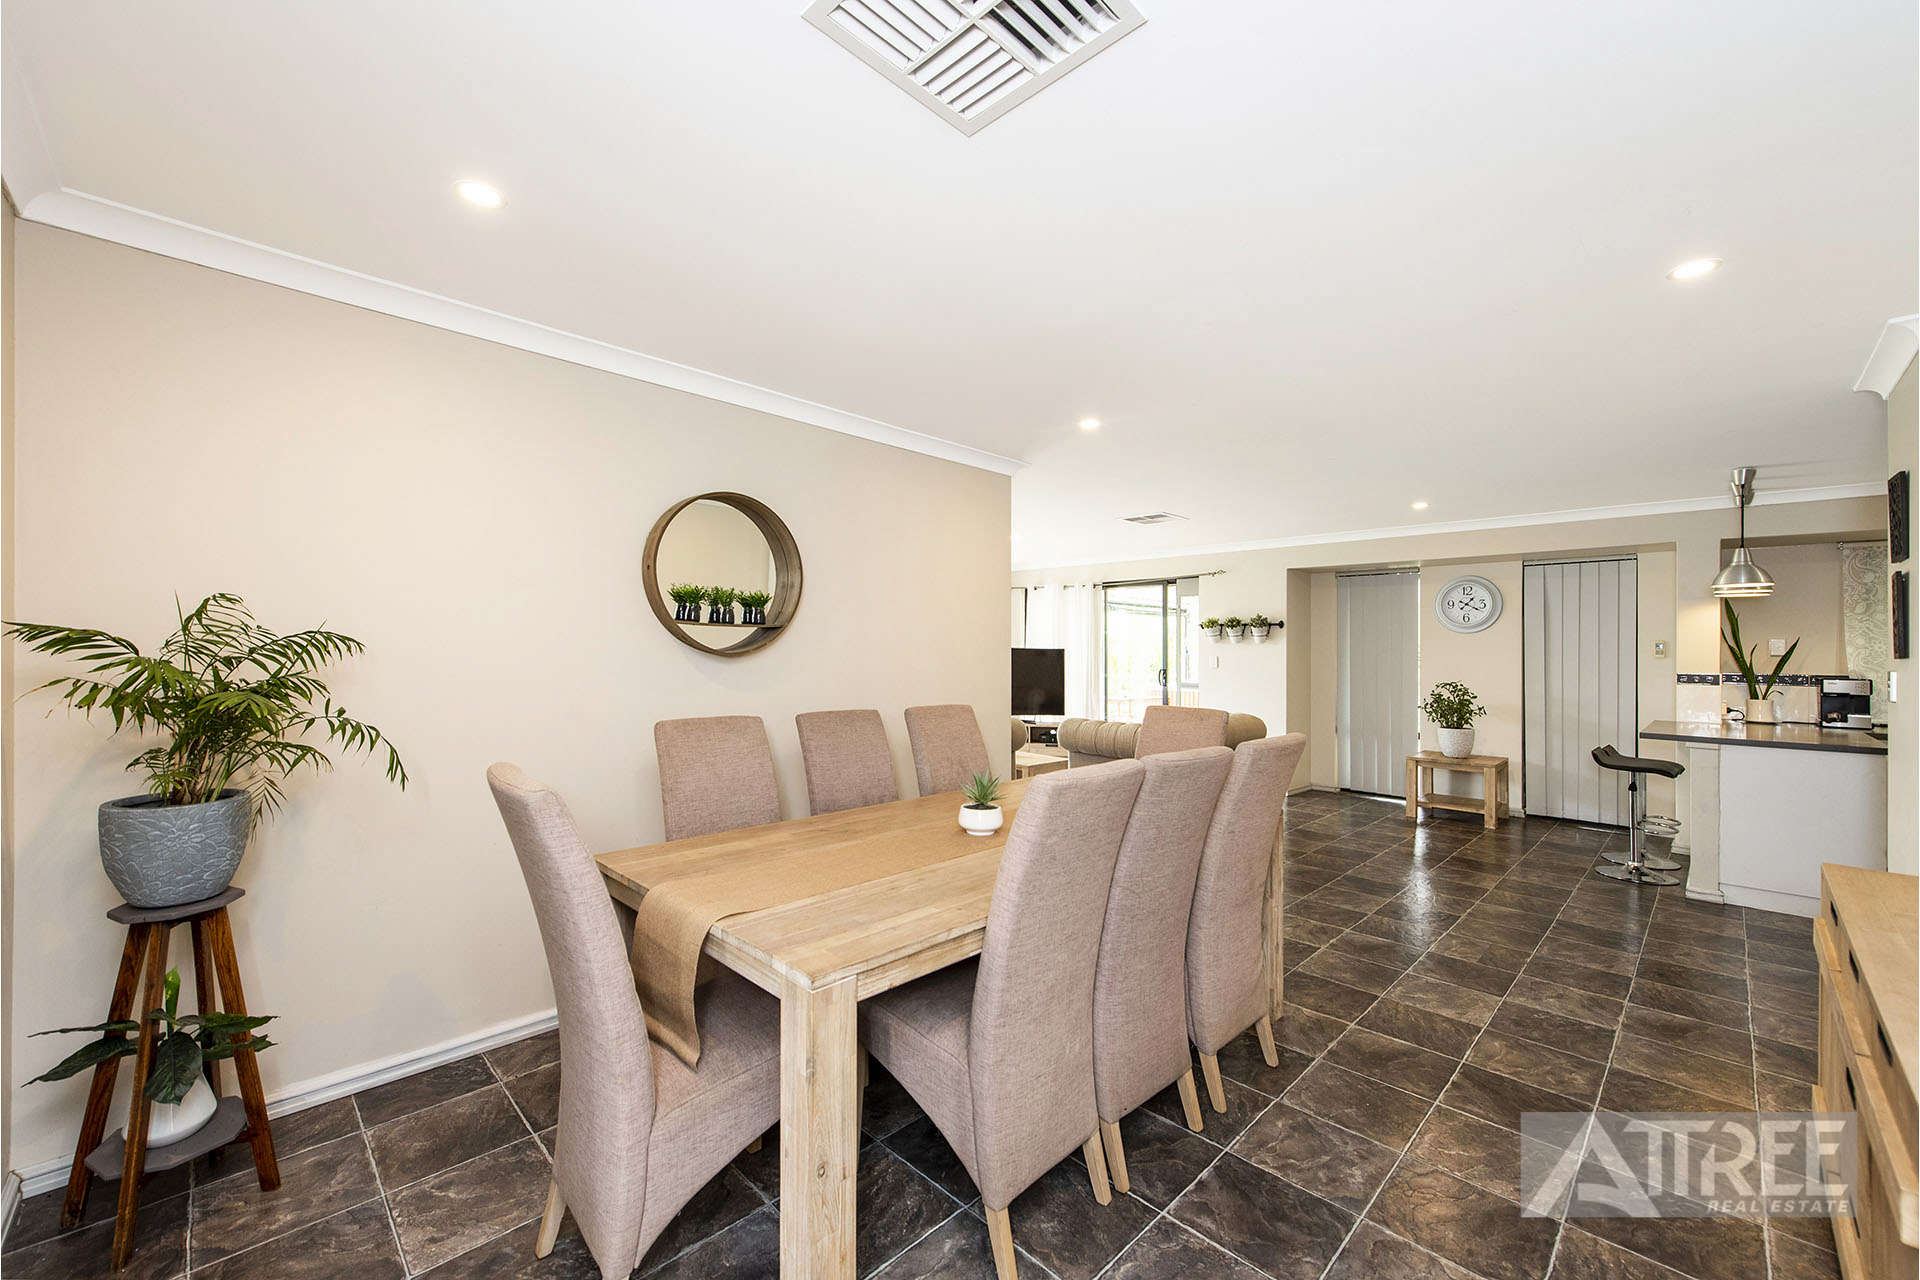 Property for sale in SOUTHERN RIVER, 201 Harpenden Street : Attree Real Estate